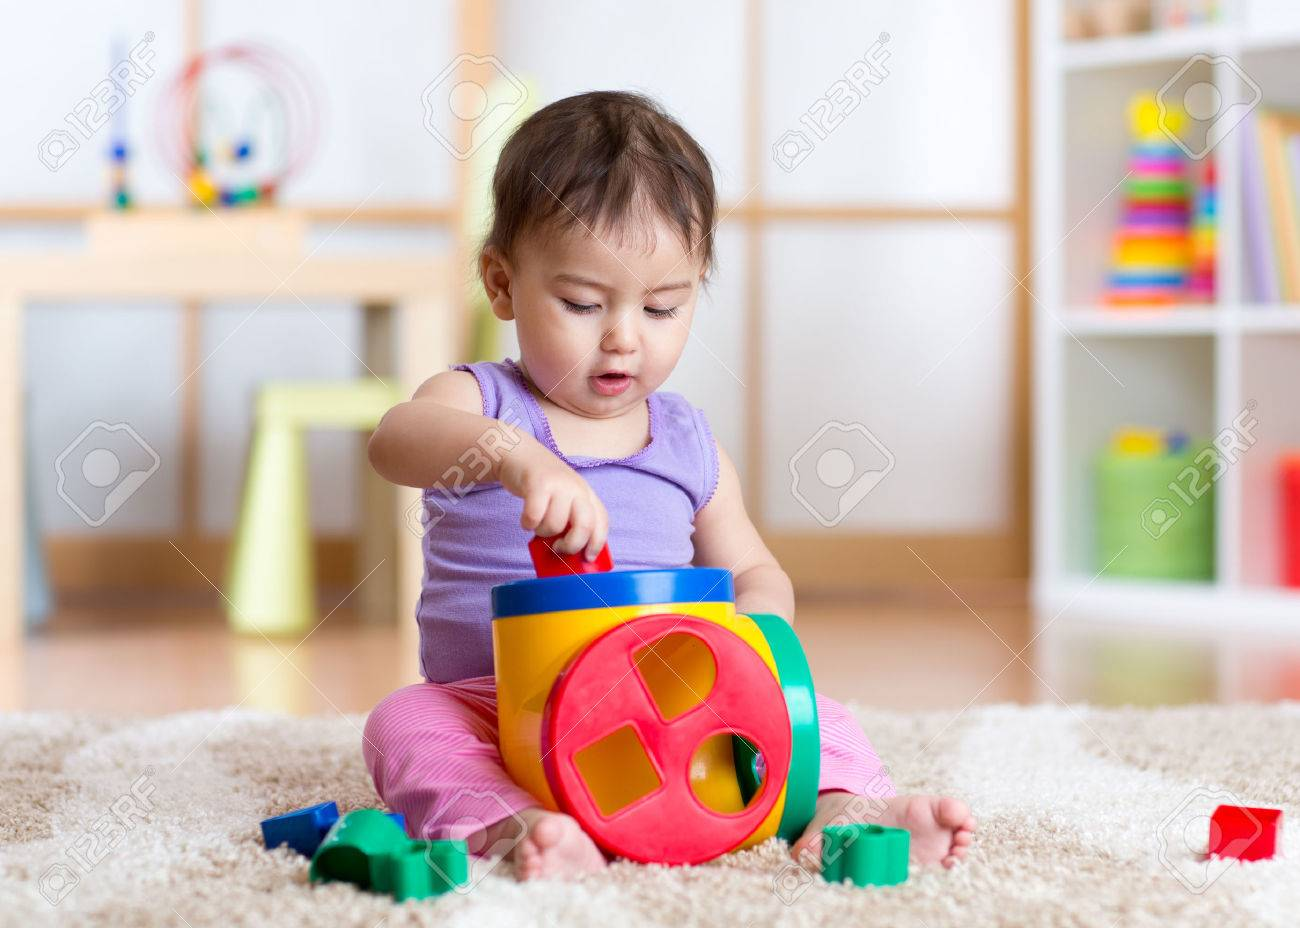 Cute toddler girl playing indoors with sorter toy sitting on soft carpet Stock Photo - 54307076